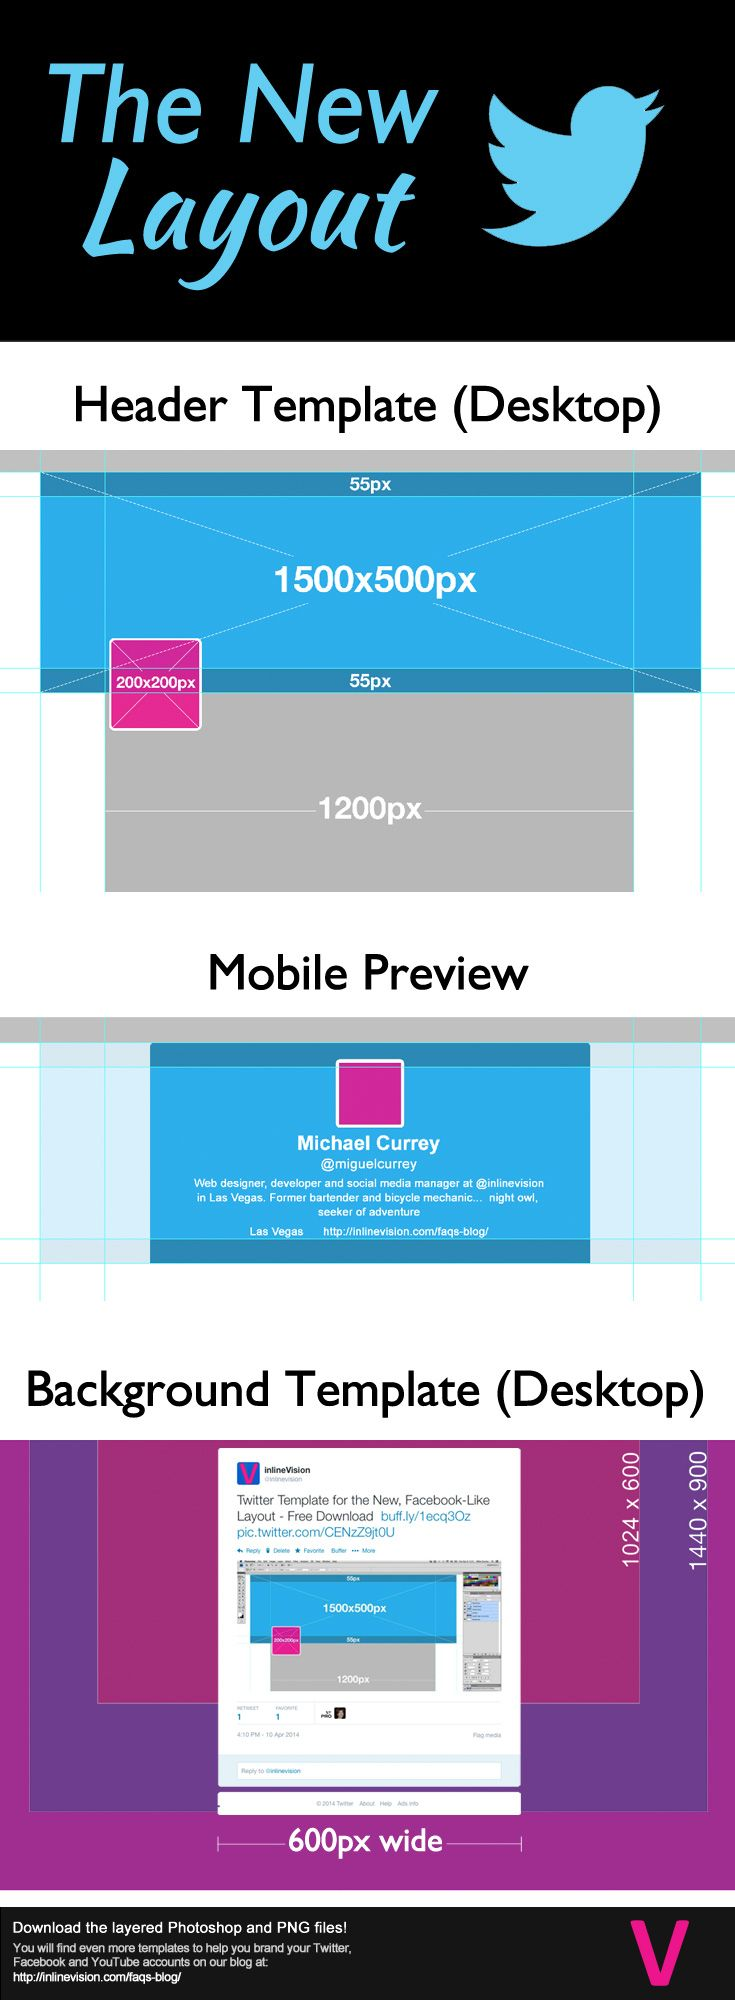 Updated specs for the new Twitter layout. Download the FREE ...